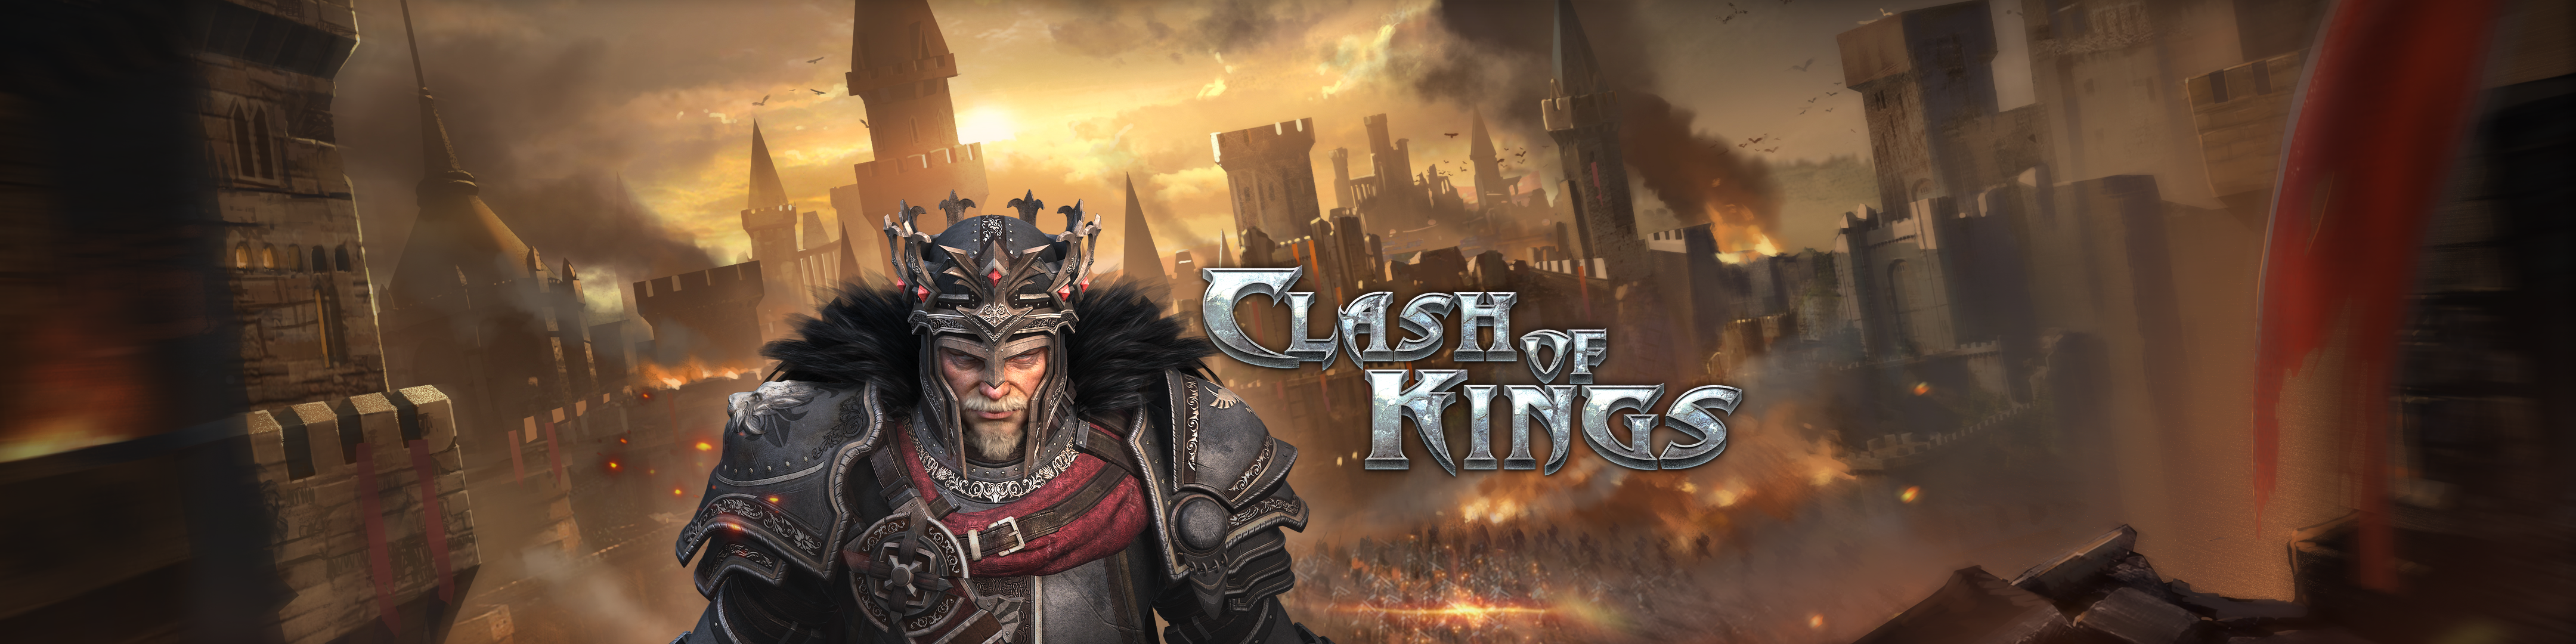 clash of king hack apk free download